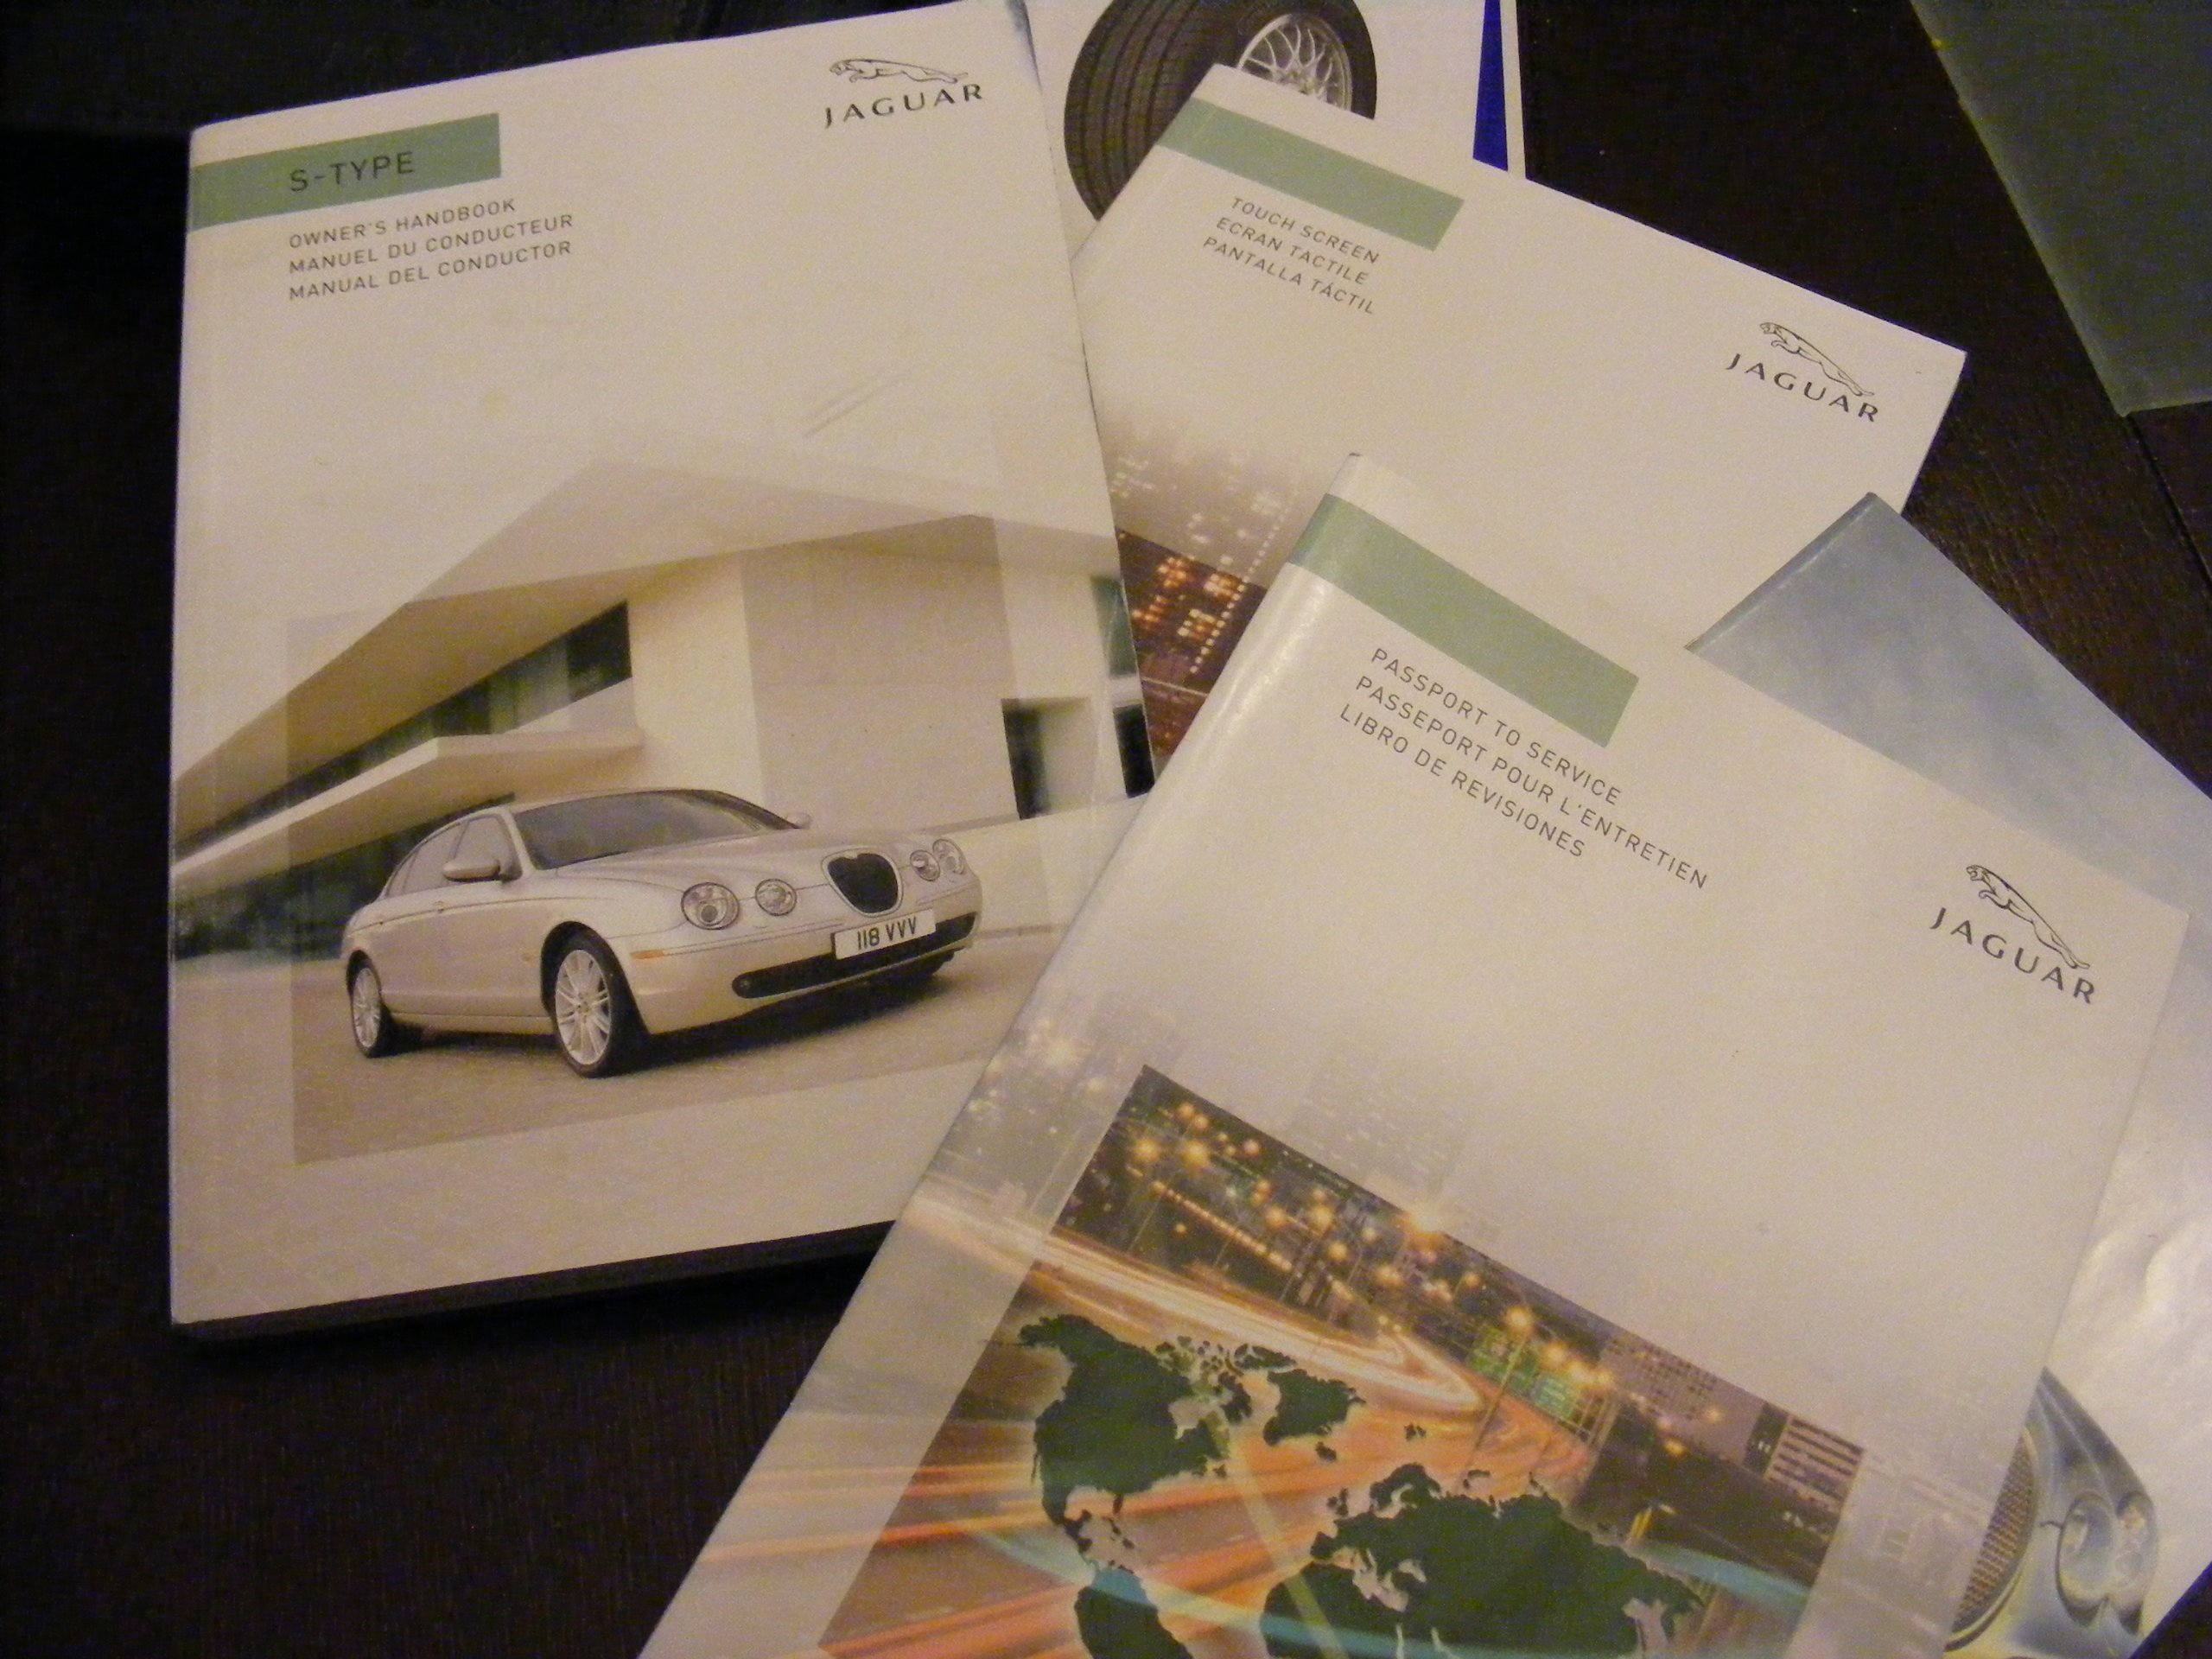 06 Jaguar S-Type Vehicle Owners Manual Handbook Guide Set: Jaguar:  Amazon.com: Books